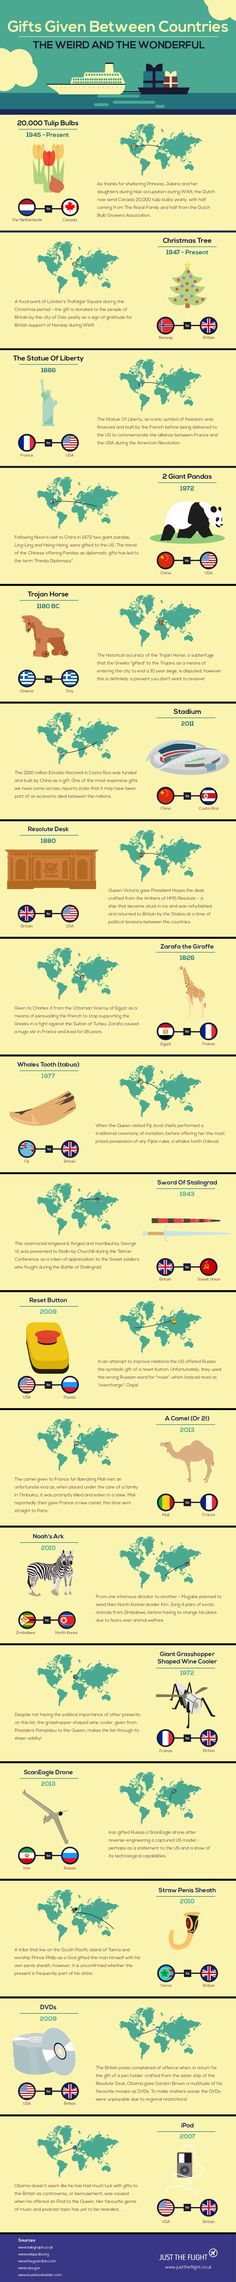 Gifts Given Between Countries #Infographic #History